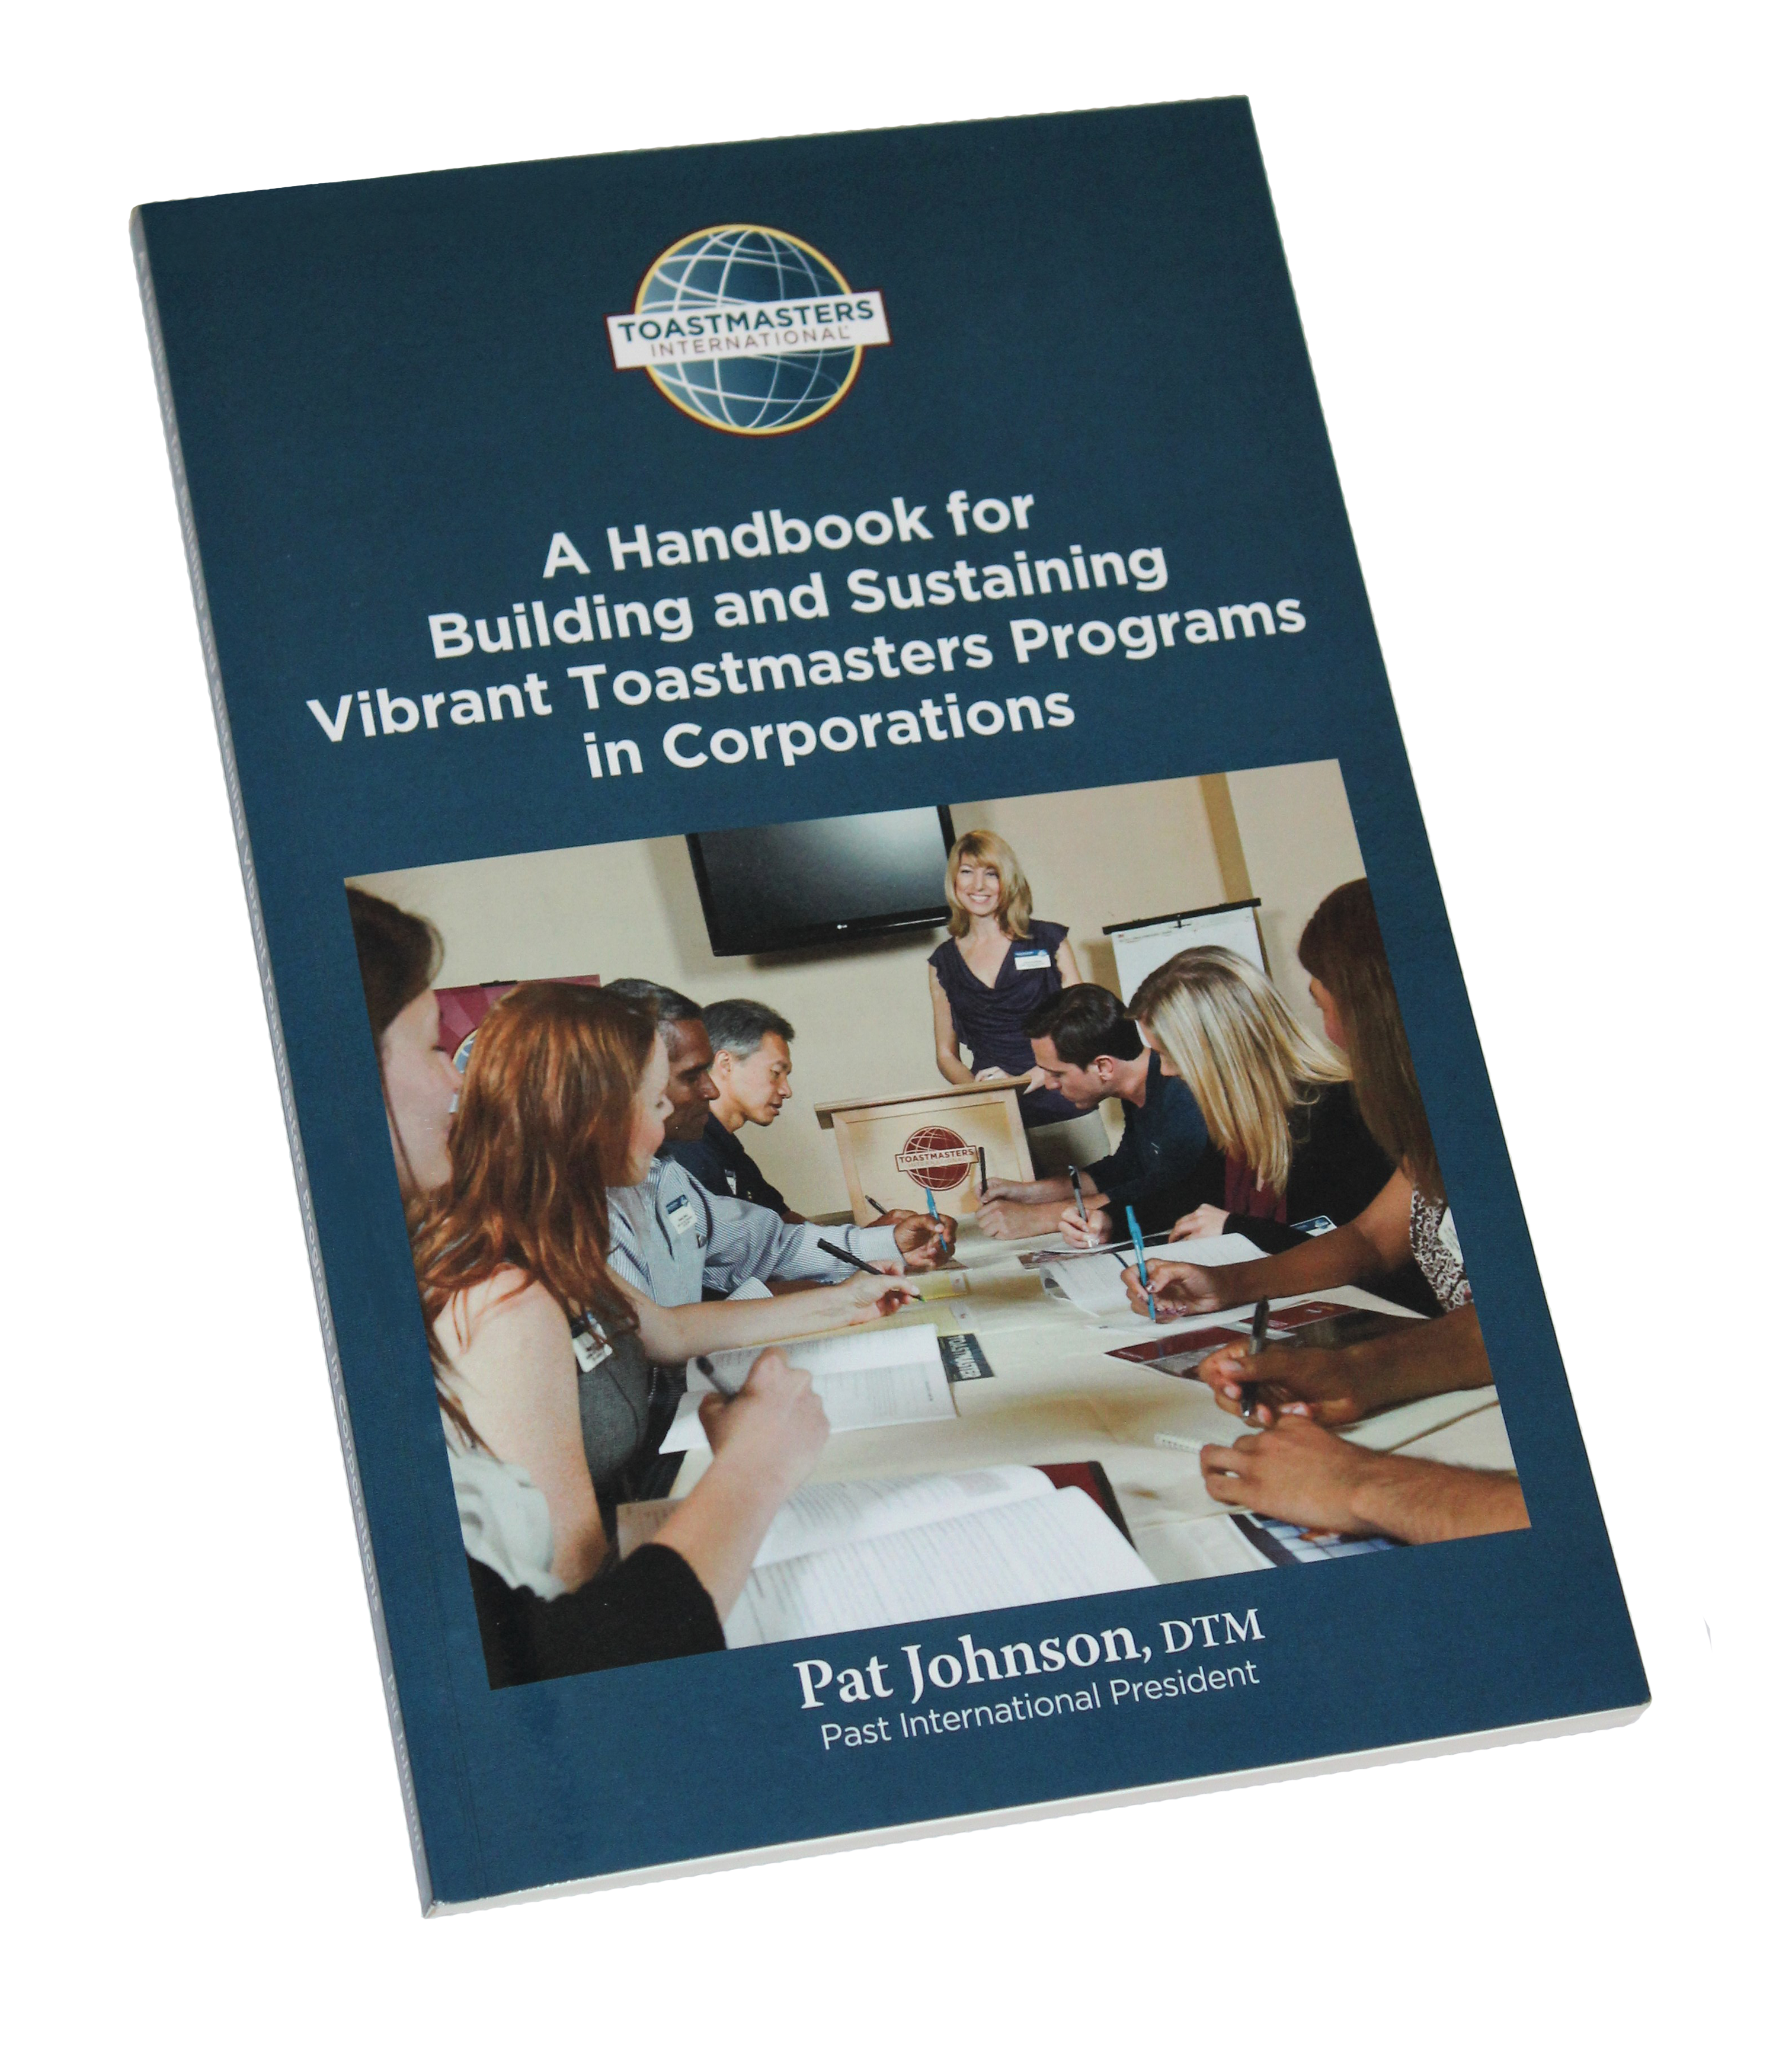 A Handbook for Building and Sustaining Vibrant Toastmaster Programs in Corporations